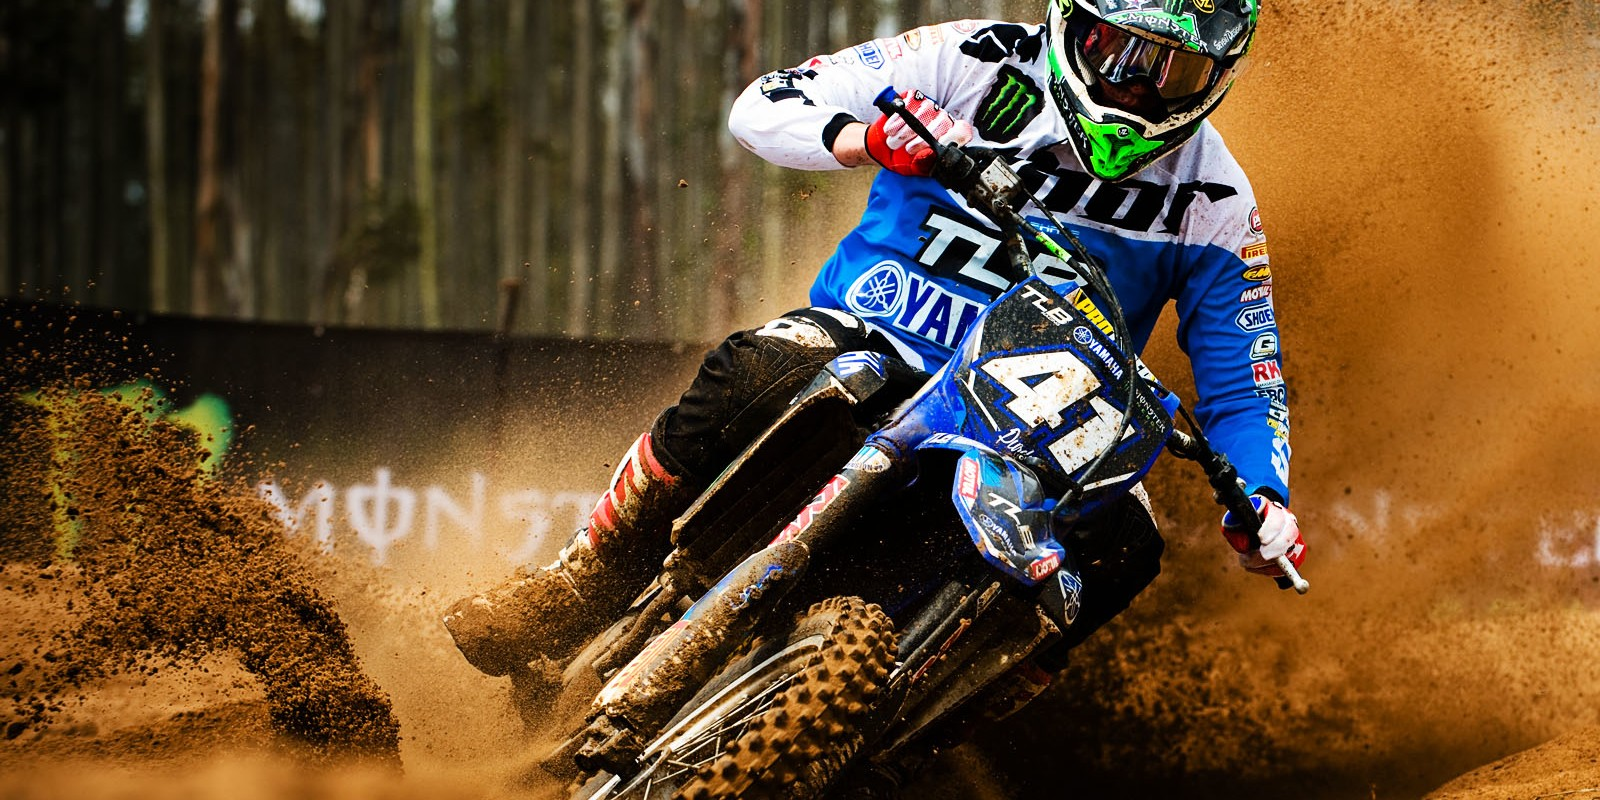 Tristan Purdon at Round 6 of South Africa MX Nationals in Teza, Richards Bay, South Africa